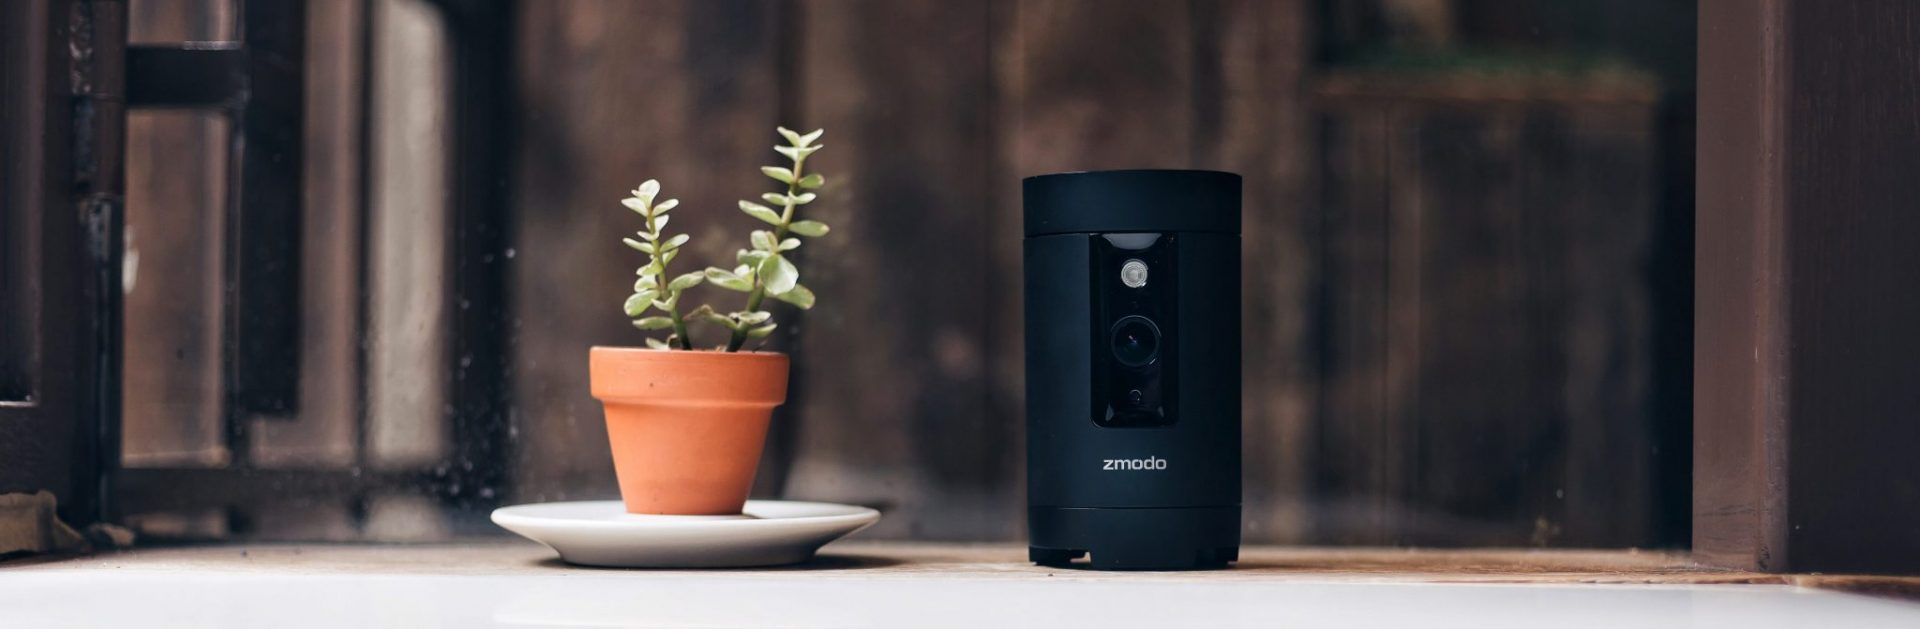 Zmodo Camera Reviews- The Zmodo Security Camera -Zmodo Pivot photo